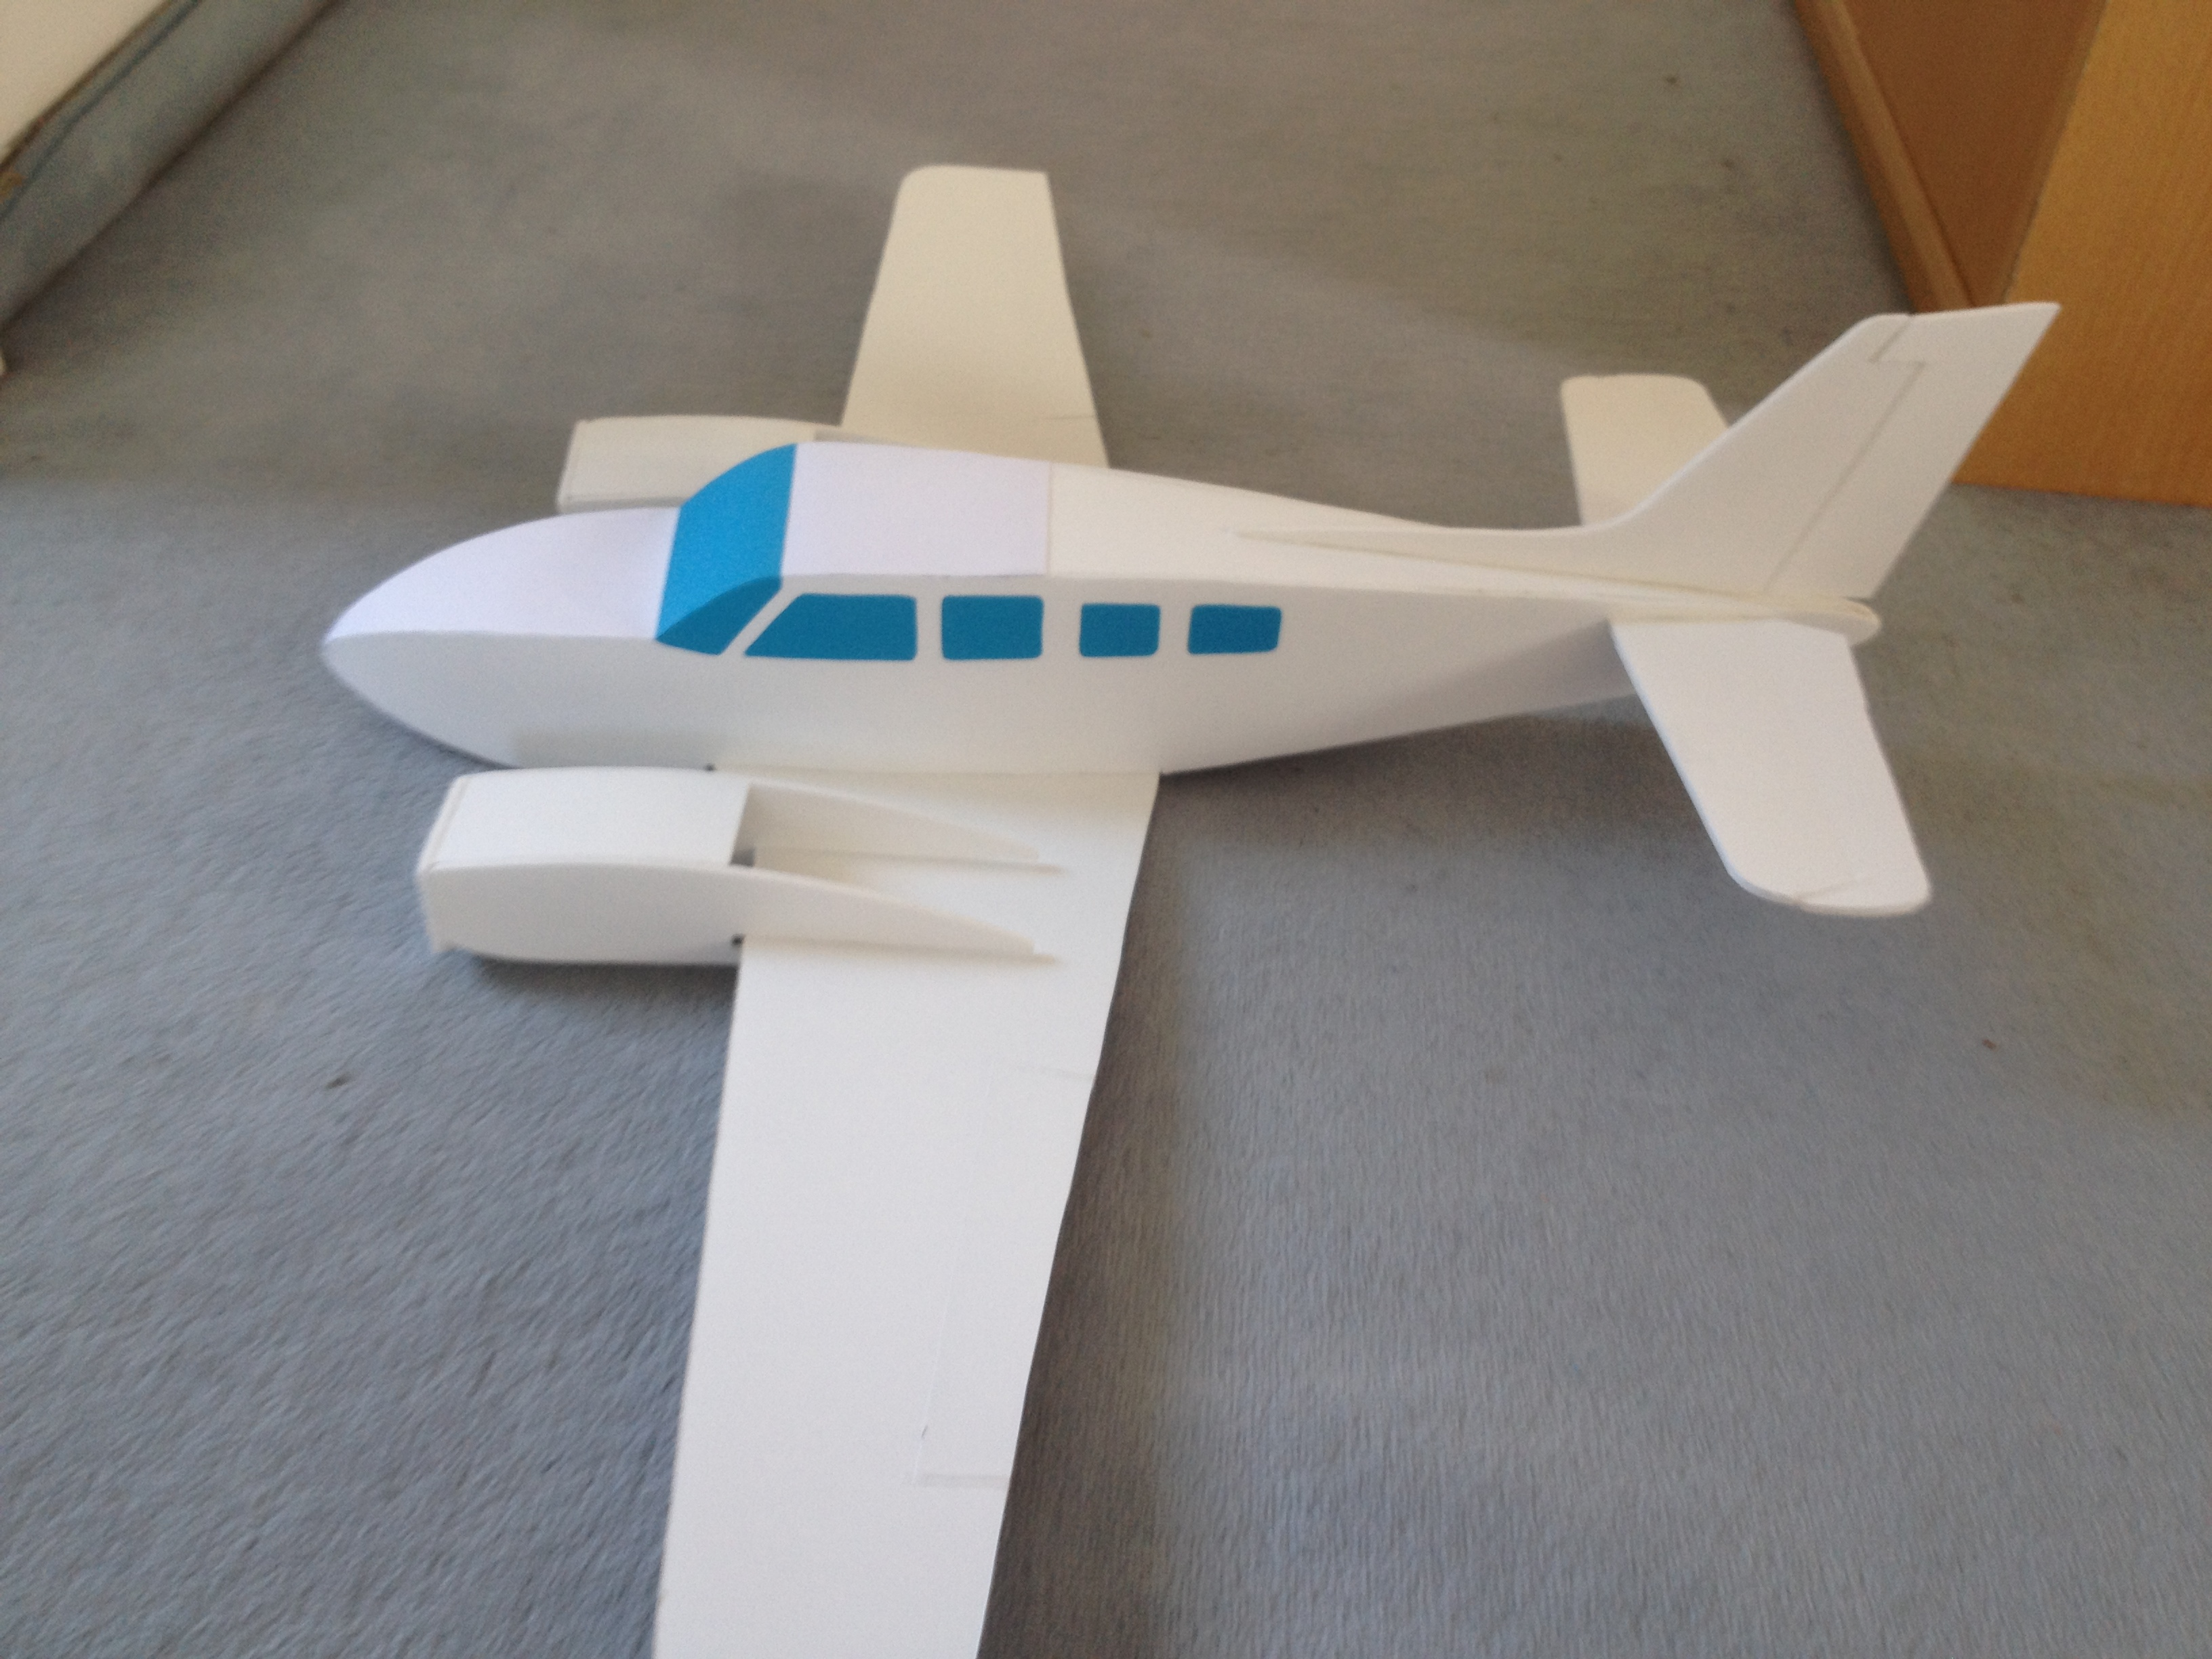 Mini Beechcraft Baron G58 - Opinions and suggestions